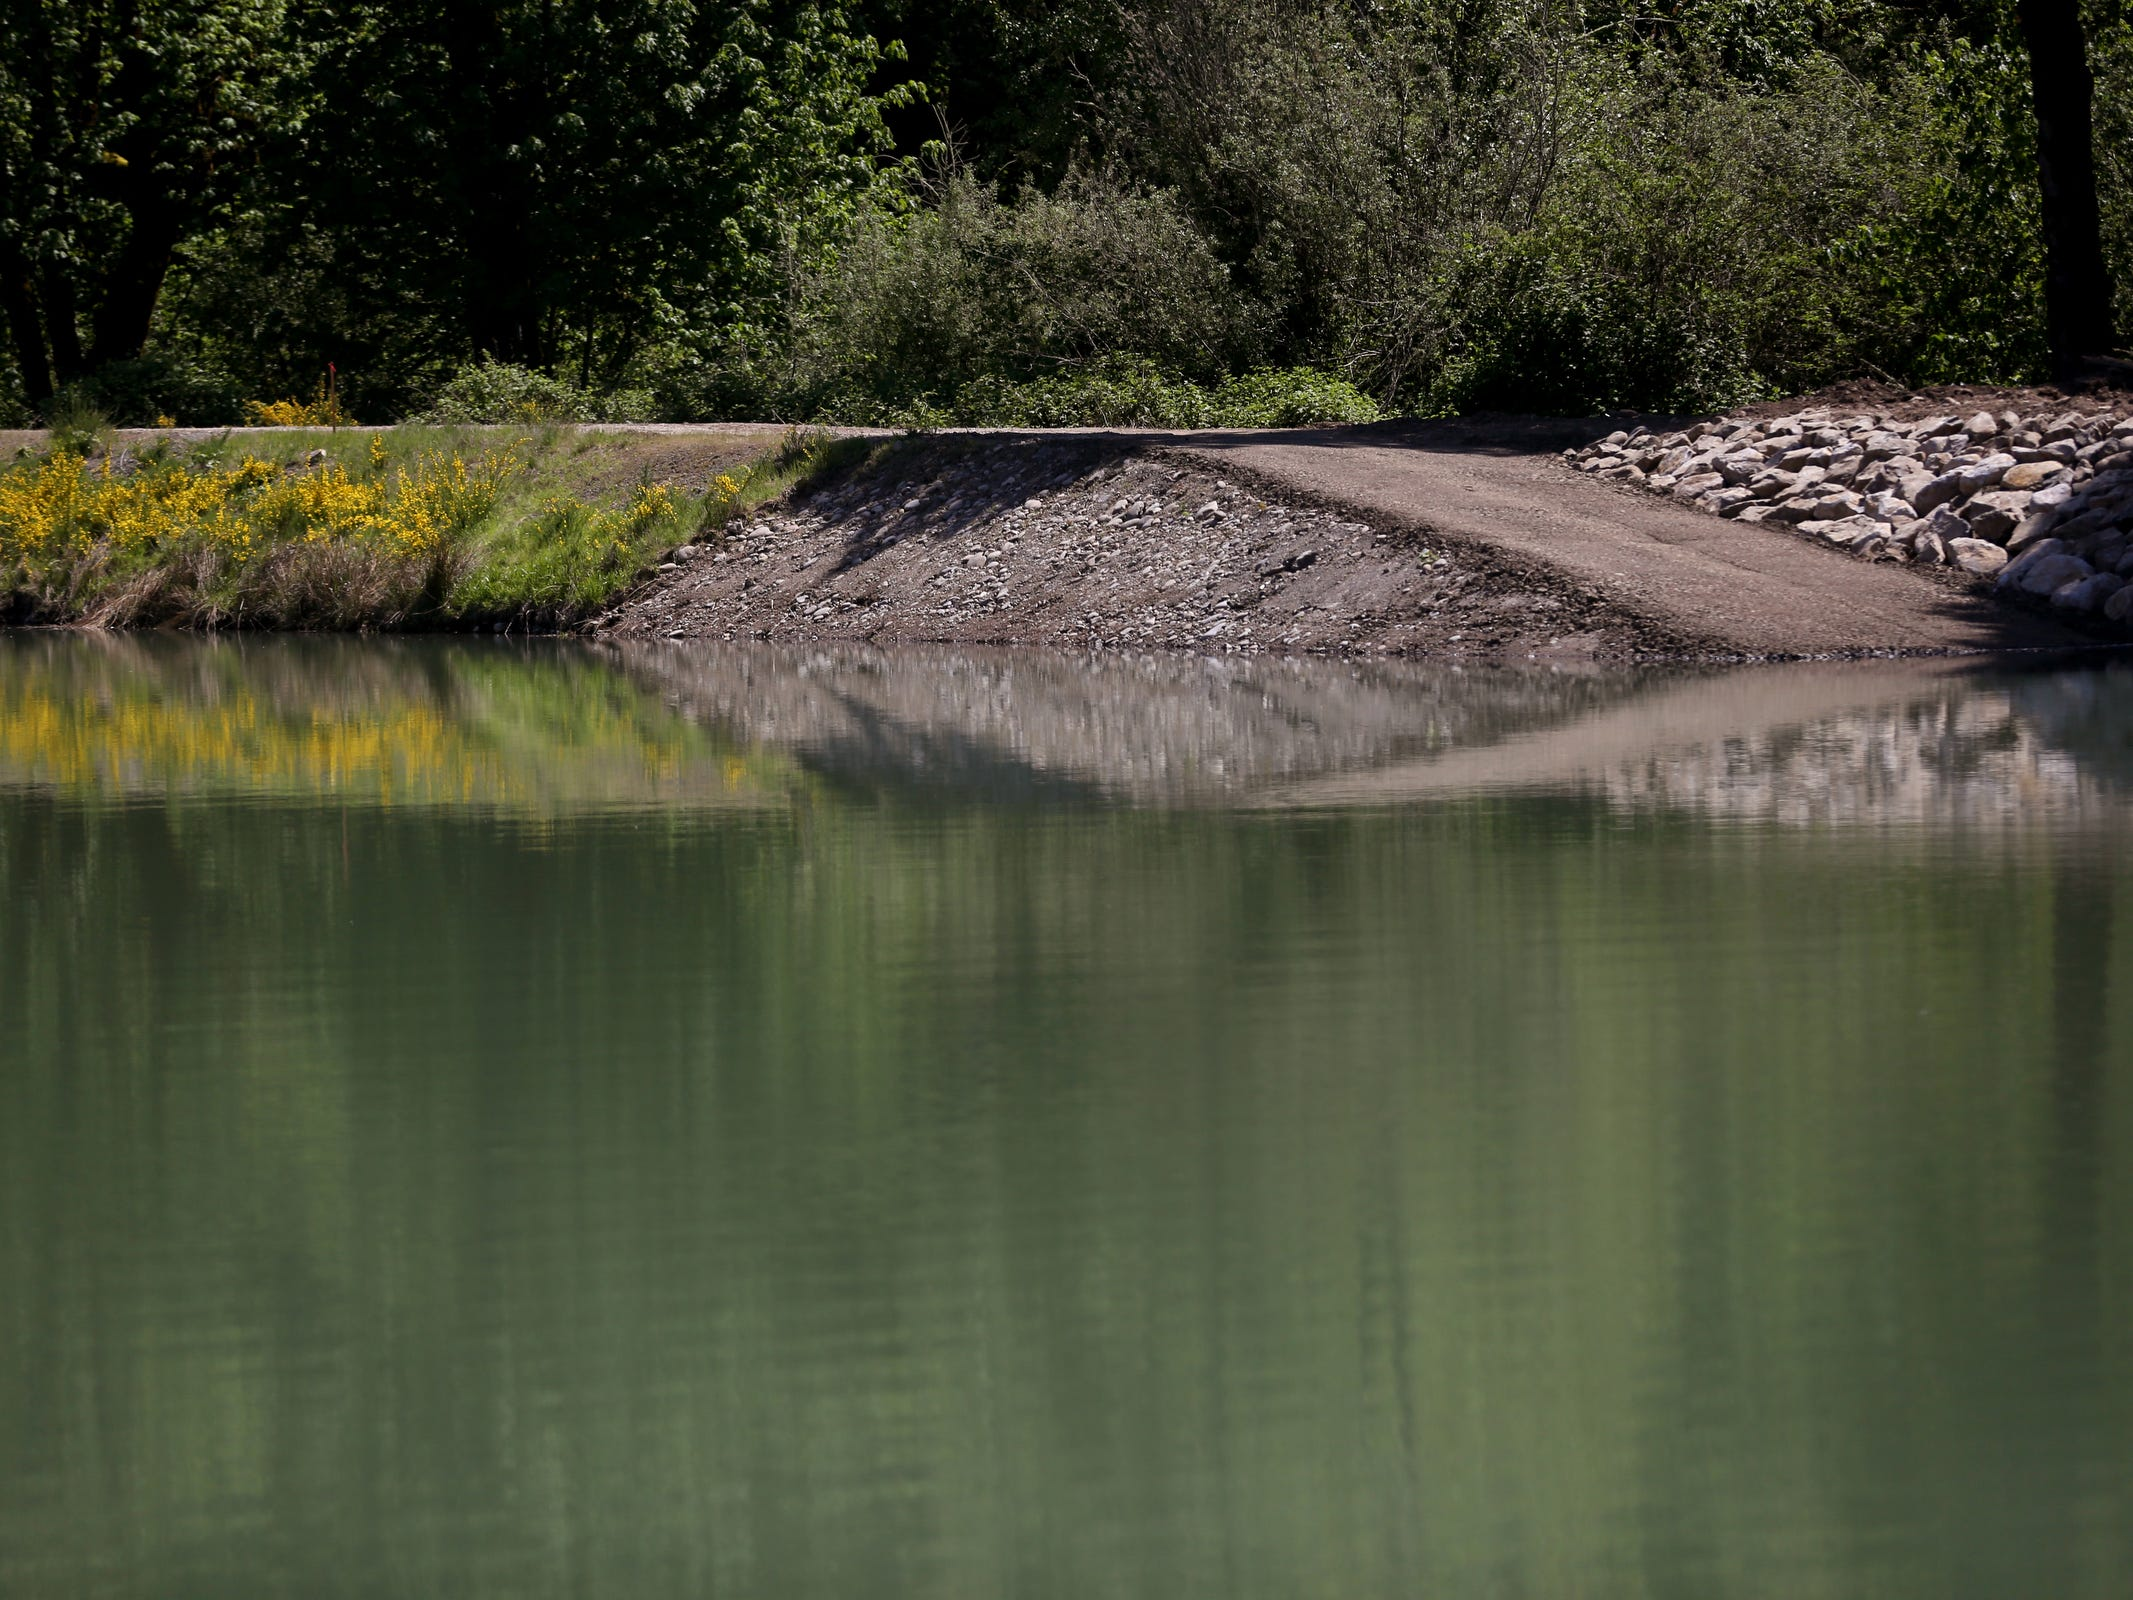 A basin used for powder-activated carbon treatment has been widened at the Geren Island Water Treatment Facility near Stayton on May 10, 2019. Salem officials are planning to spend more than $75 million to build defenses against toxic algae, in an effort to avoid a rerun of last year's drinking water crisis.